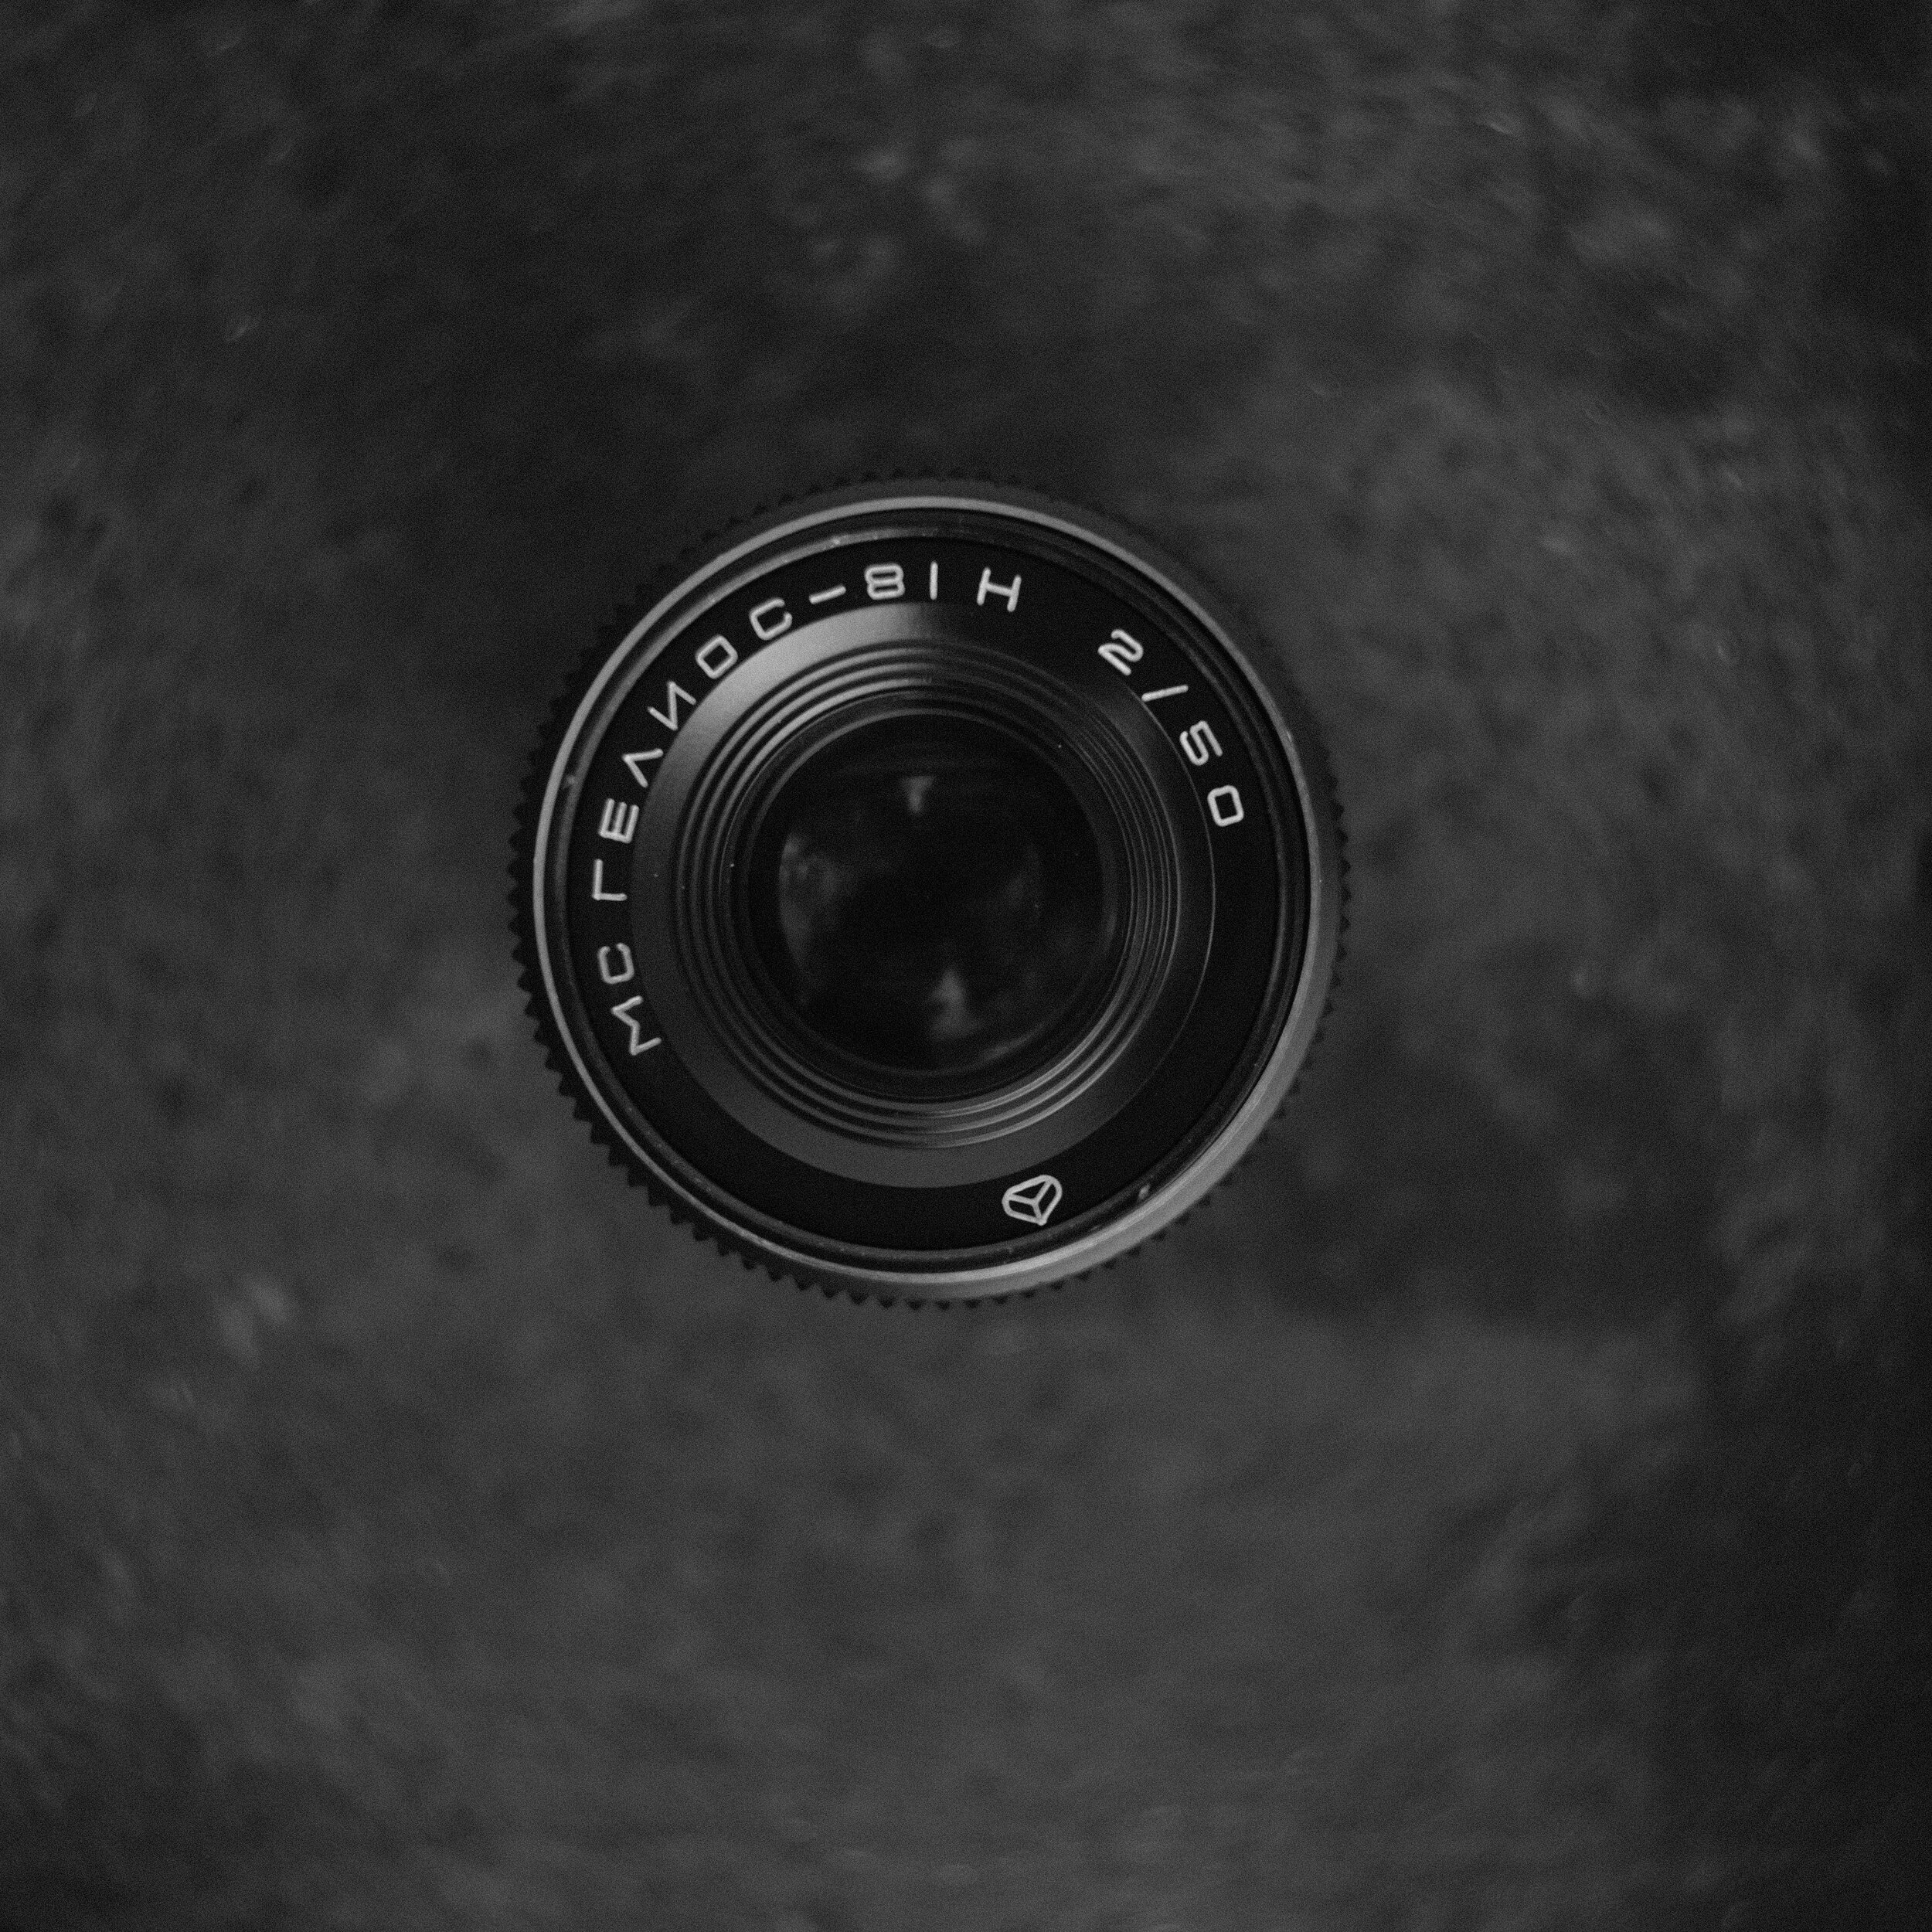 ☭ГЕАЙОС-81H☭Helios-81H, 50MM F/2 - Nikon F Mount- - Good day comrade! Come let tell you of glorious Soviet Helios camera lens. Helios lens is of top quality Soviet design. Some claim this lens merely poor copy of Zeiss Jena lens but this nothing more than counter-revolutionary propaganda! The capitalist pigs used make fun of Helios lens for being